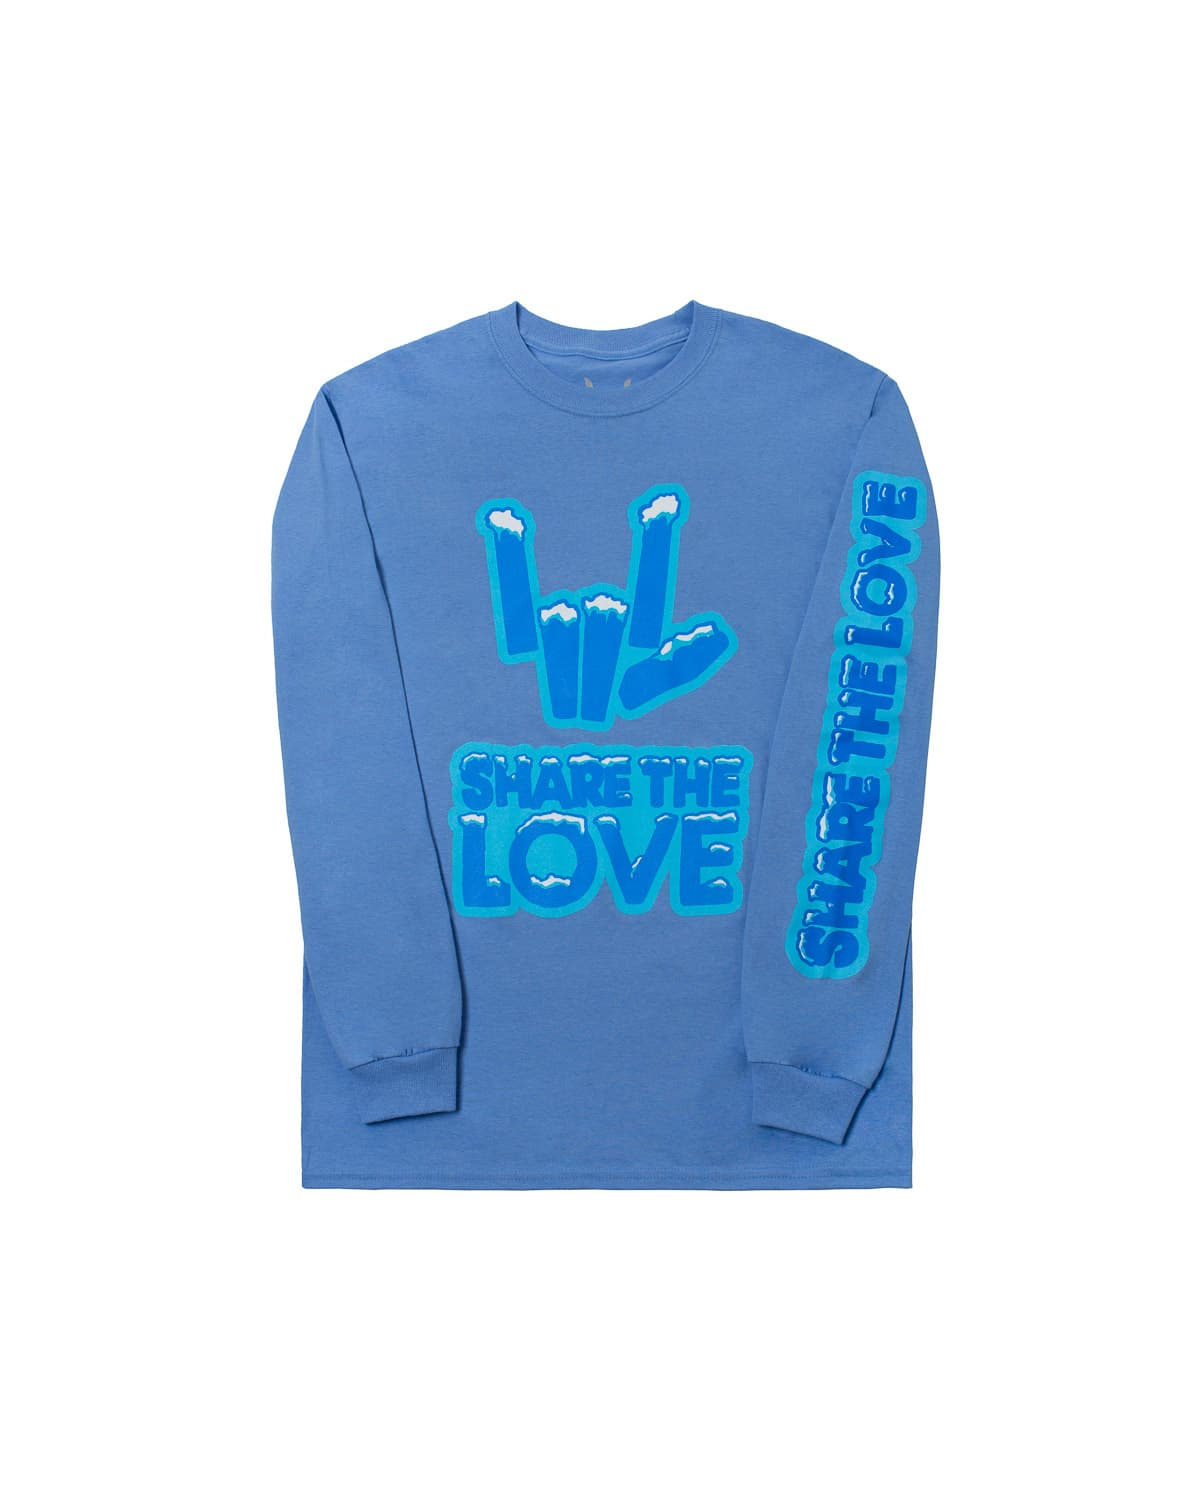 'Snowcaps' Share the Love Long Sleeve Tee